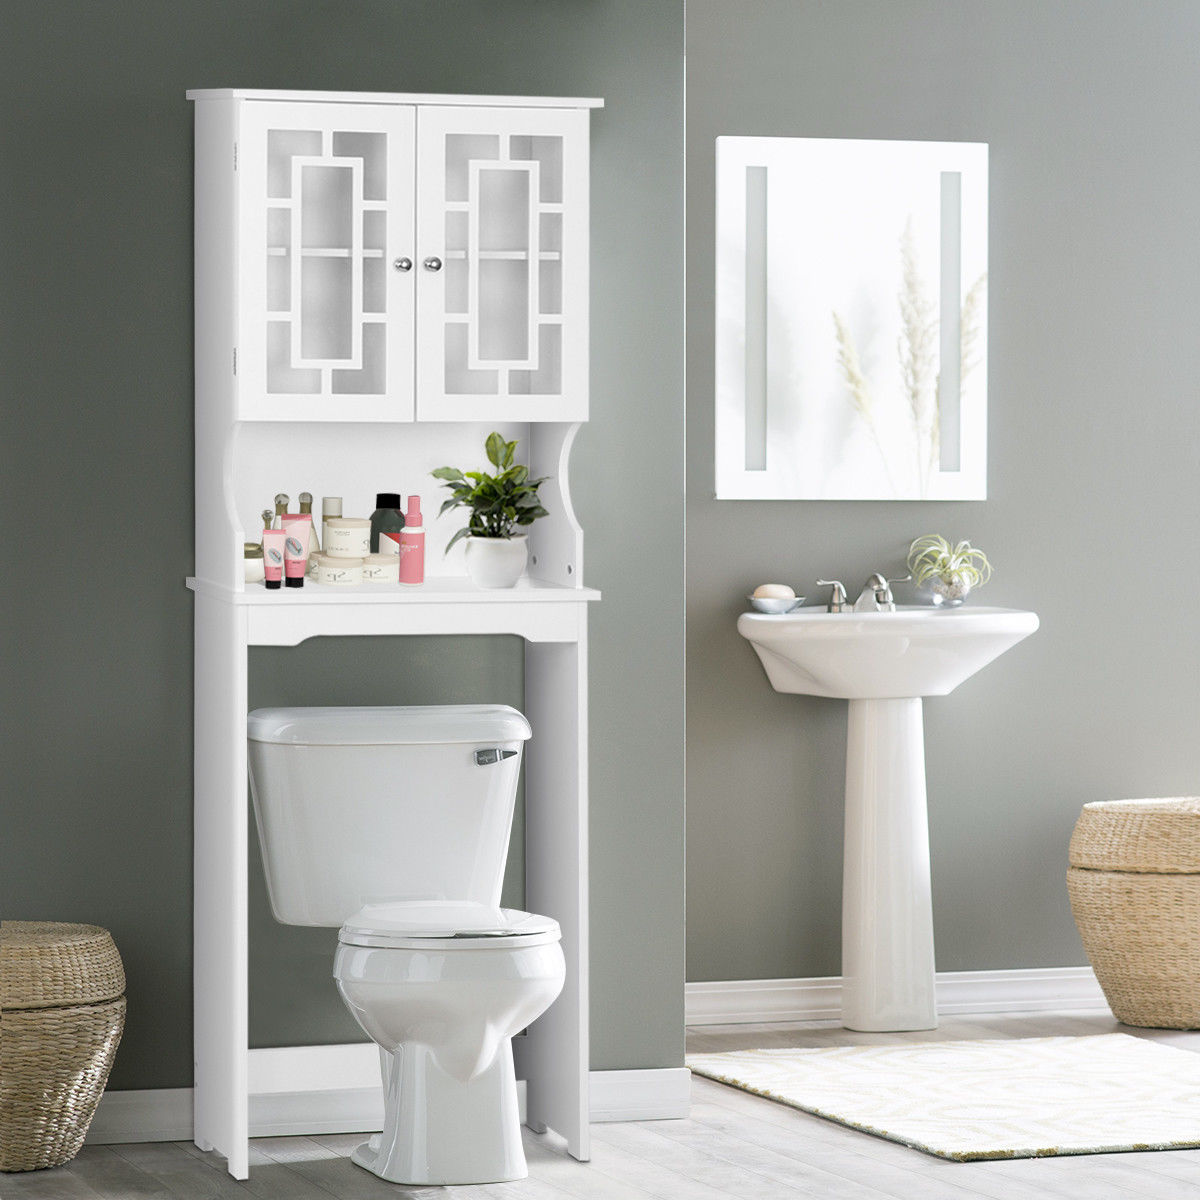 Costway Bathroom Spacesaver Over the Toilet Door Storage Cabinet Tower Organizer White